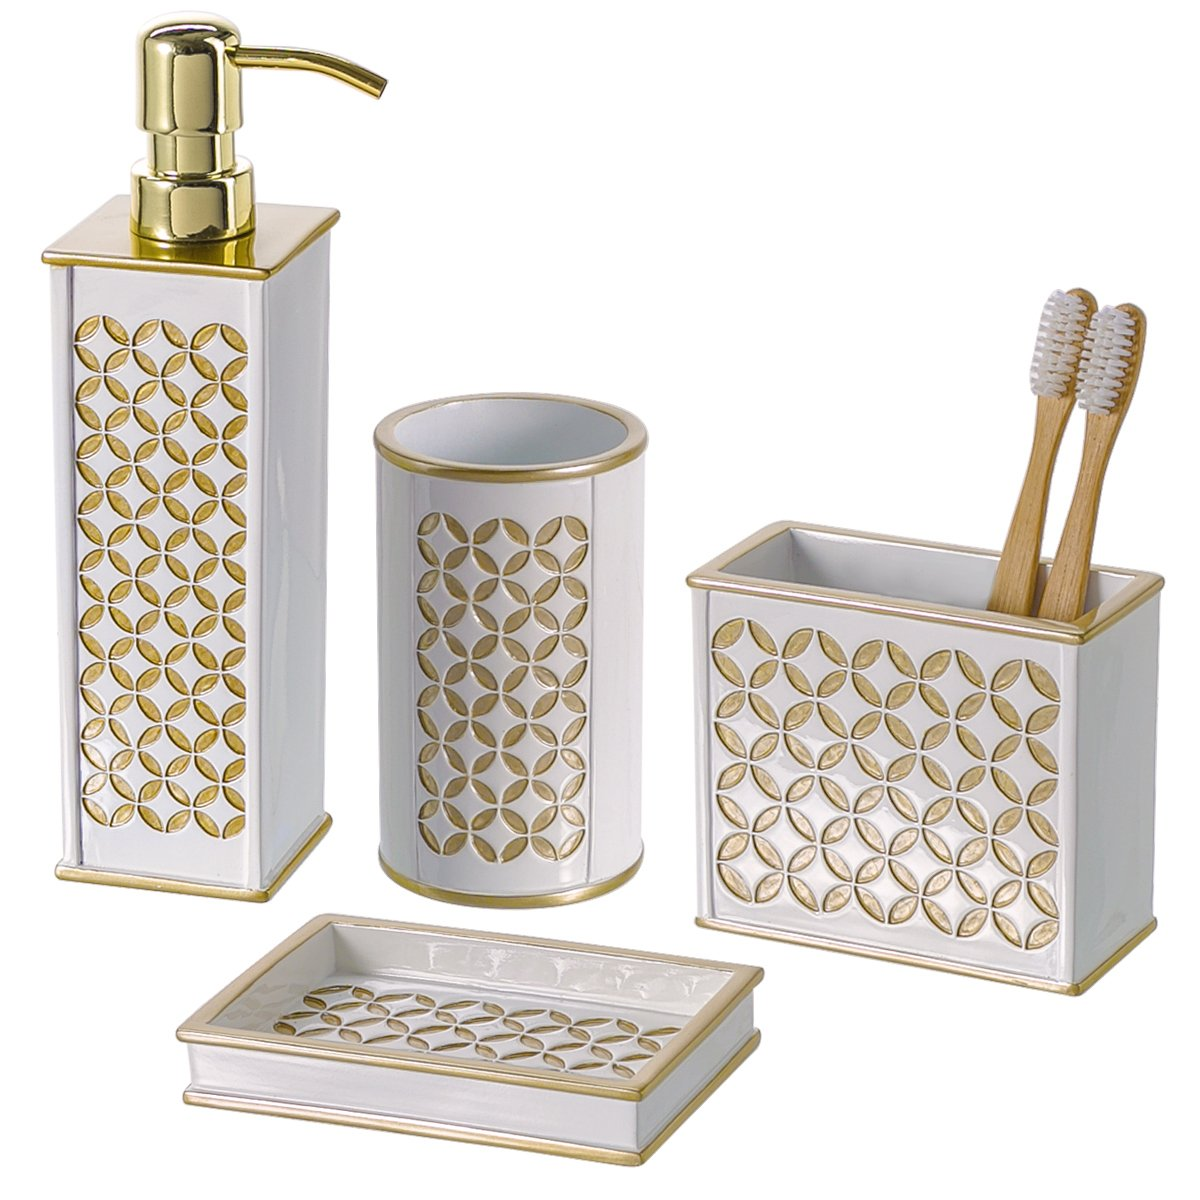 4 piece bathroom accessories set dispenser toothbrush for White bathroom accessories set